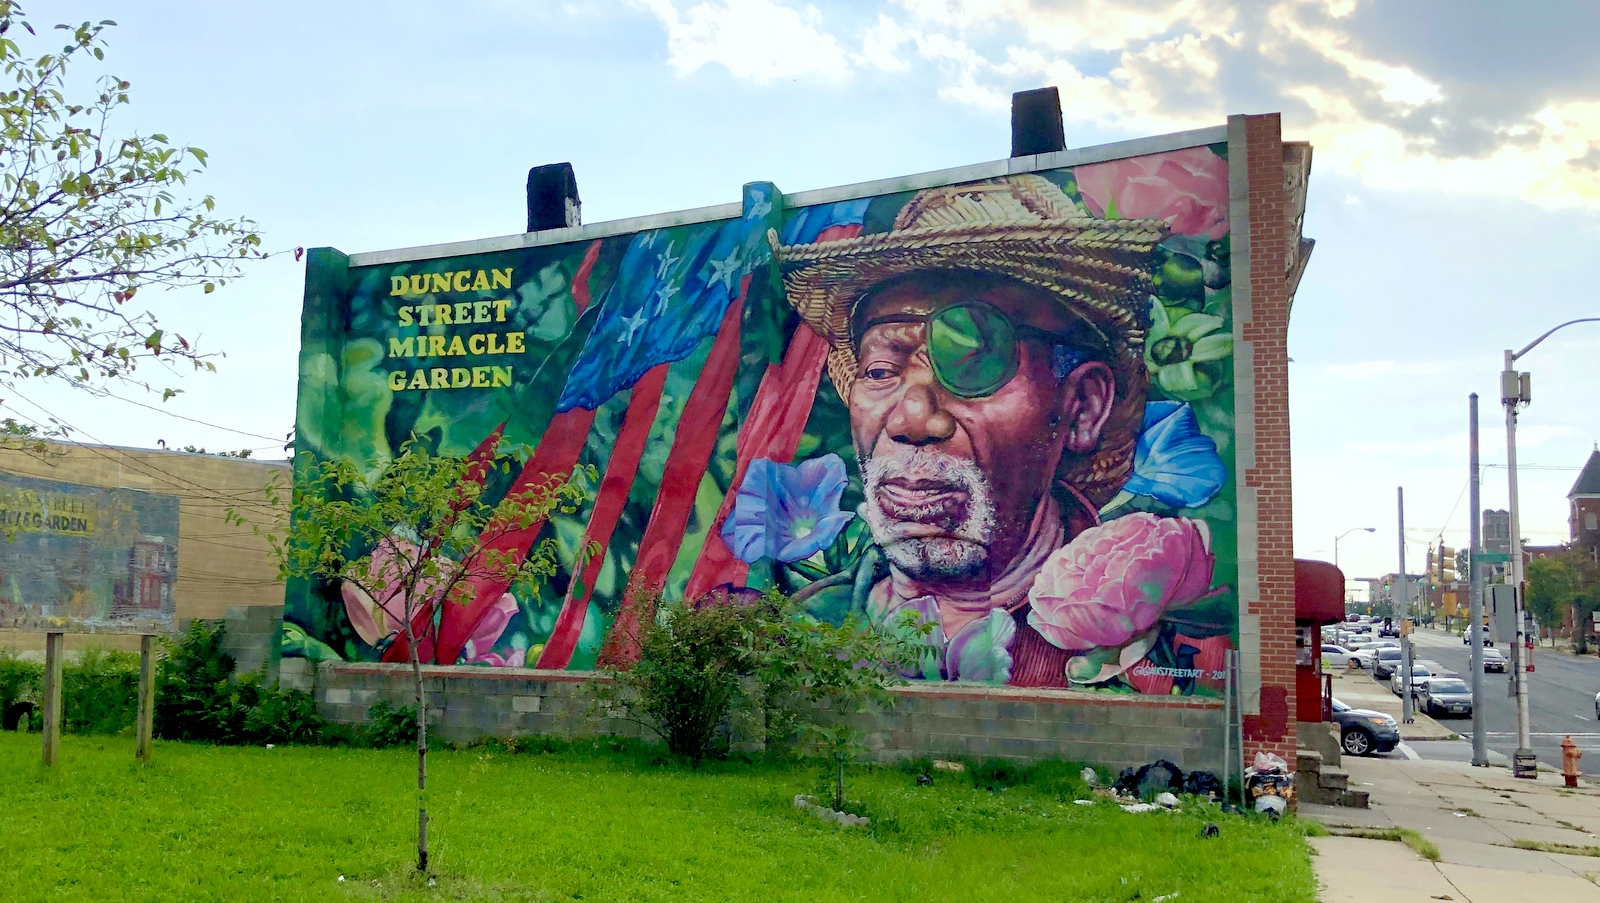 Mural pays tribute to the Duncan Street Miracle Garden's longtime steward, Lewis Sharpe. (Ian Round)